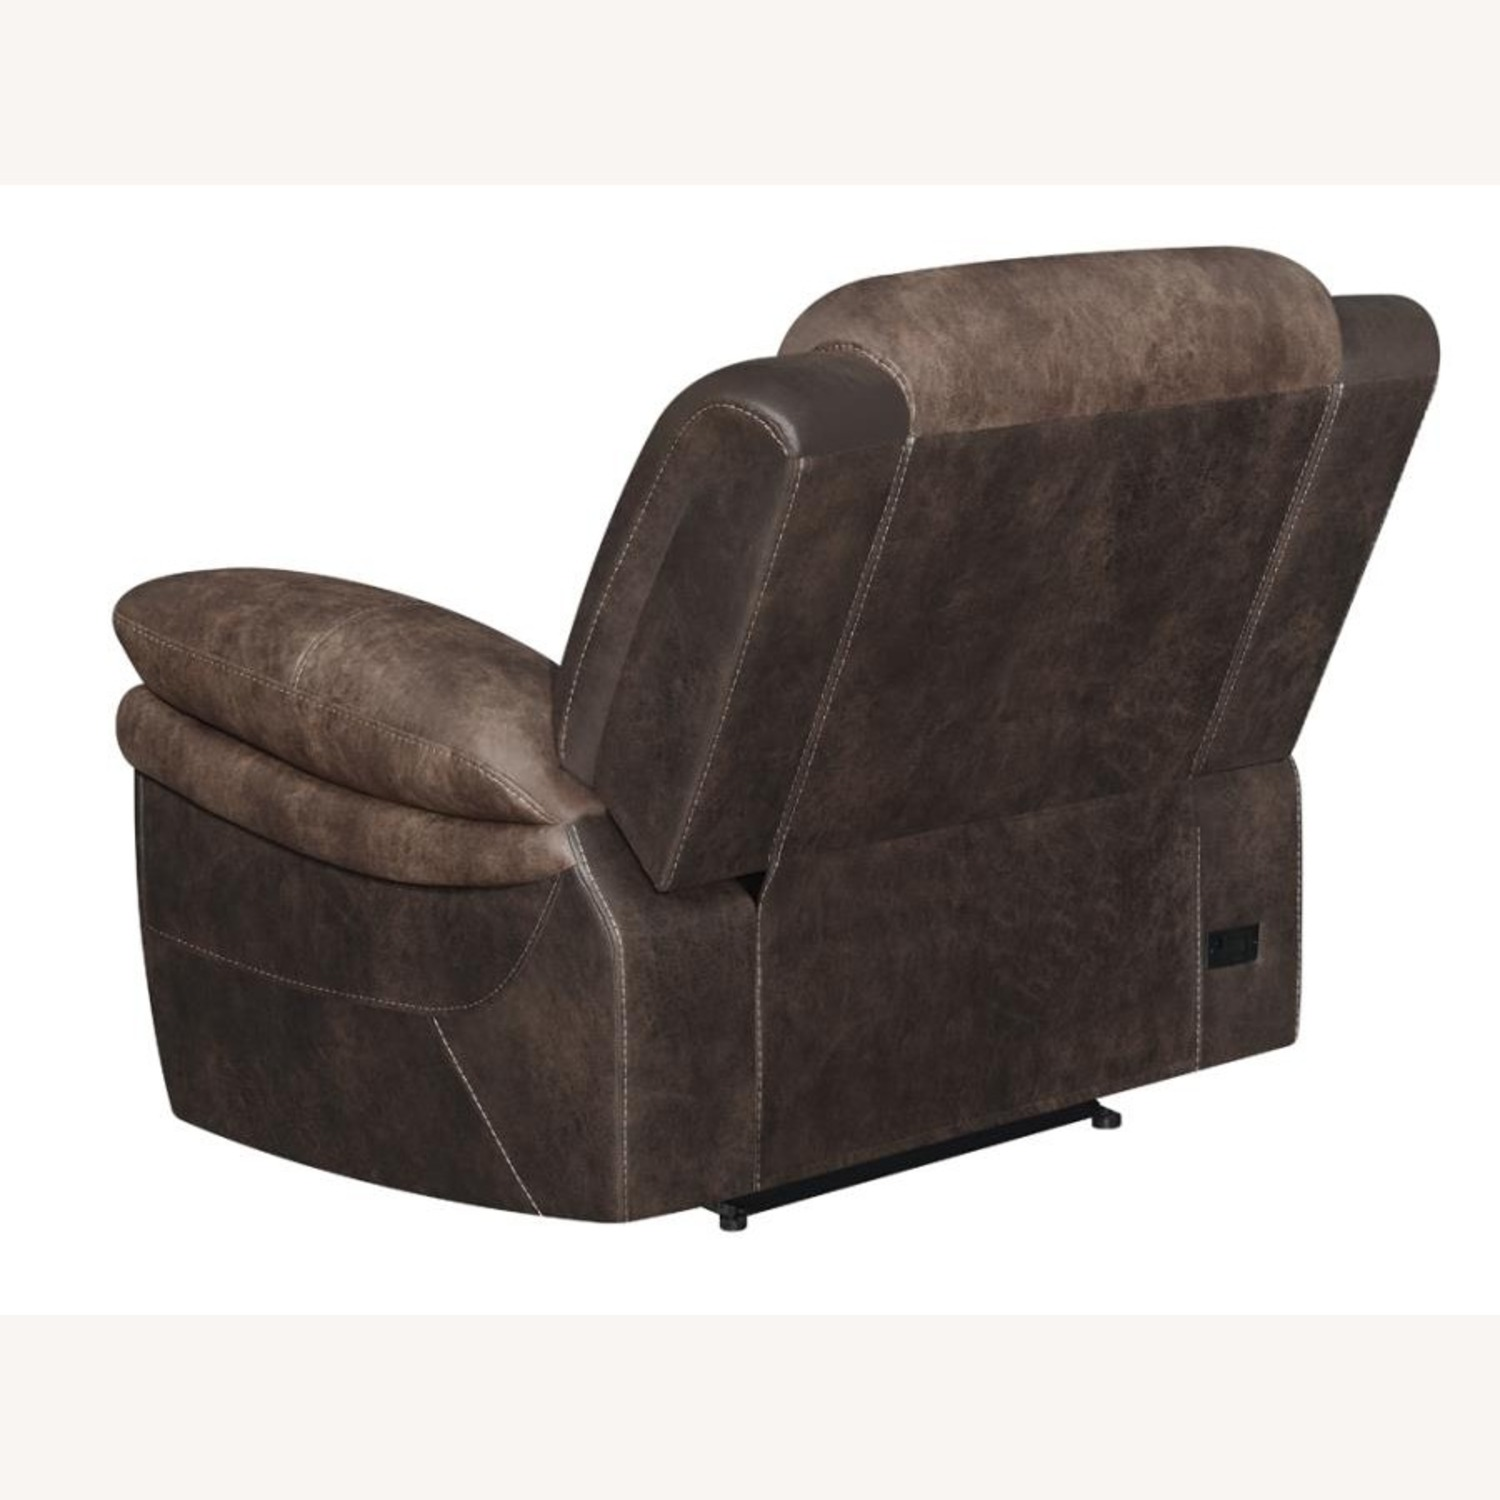 Power Recliner W/ Power Outlet In Chocolate Finish - image-3